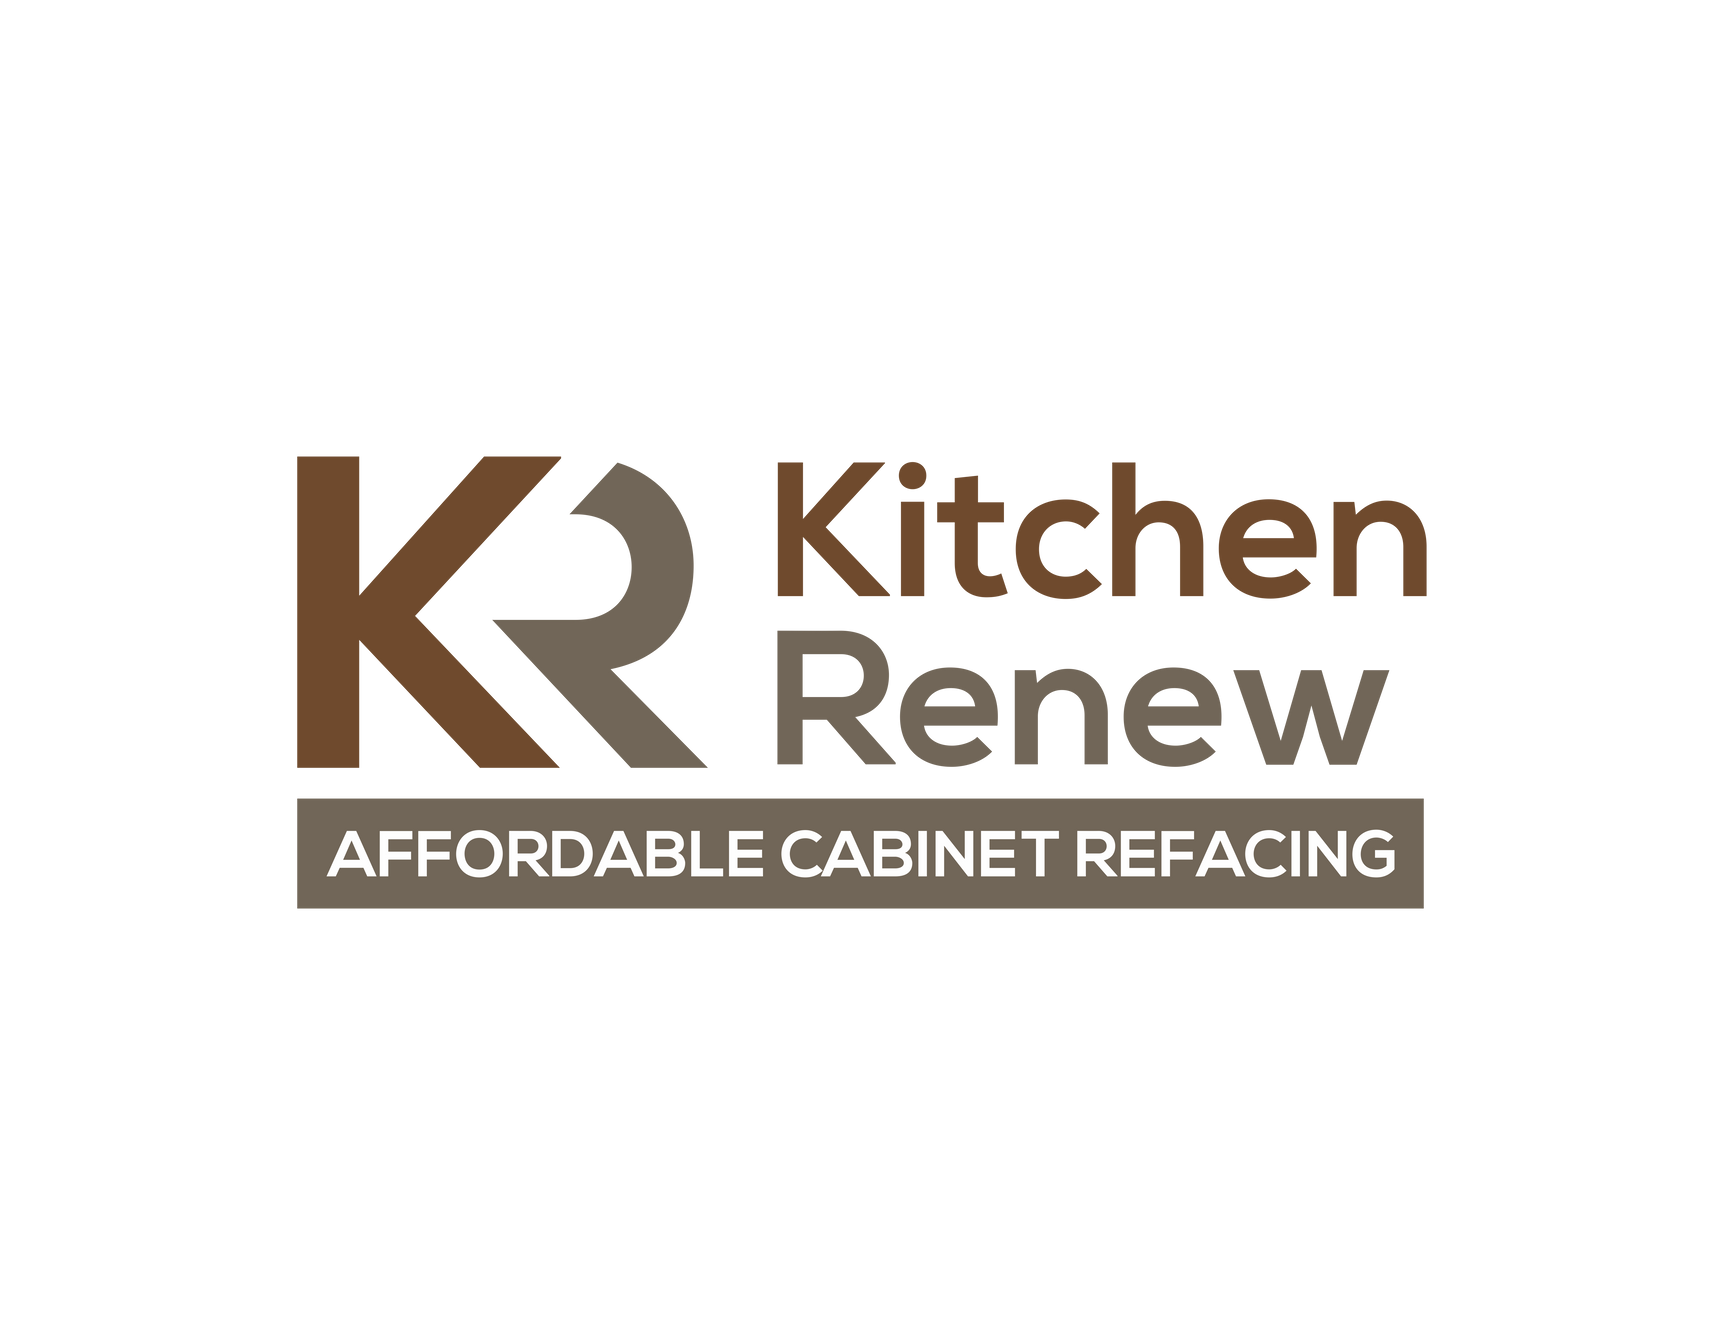 Kitchen Renew Cabinet Refacing Serving Central Florida